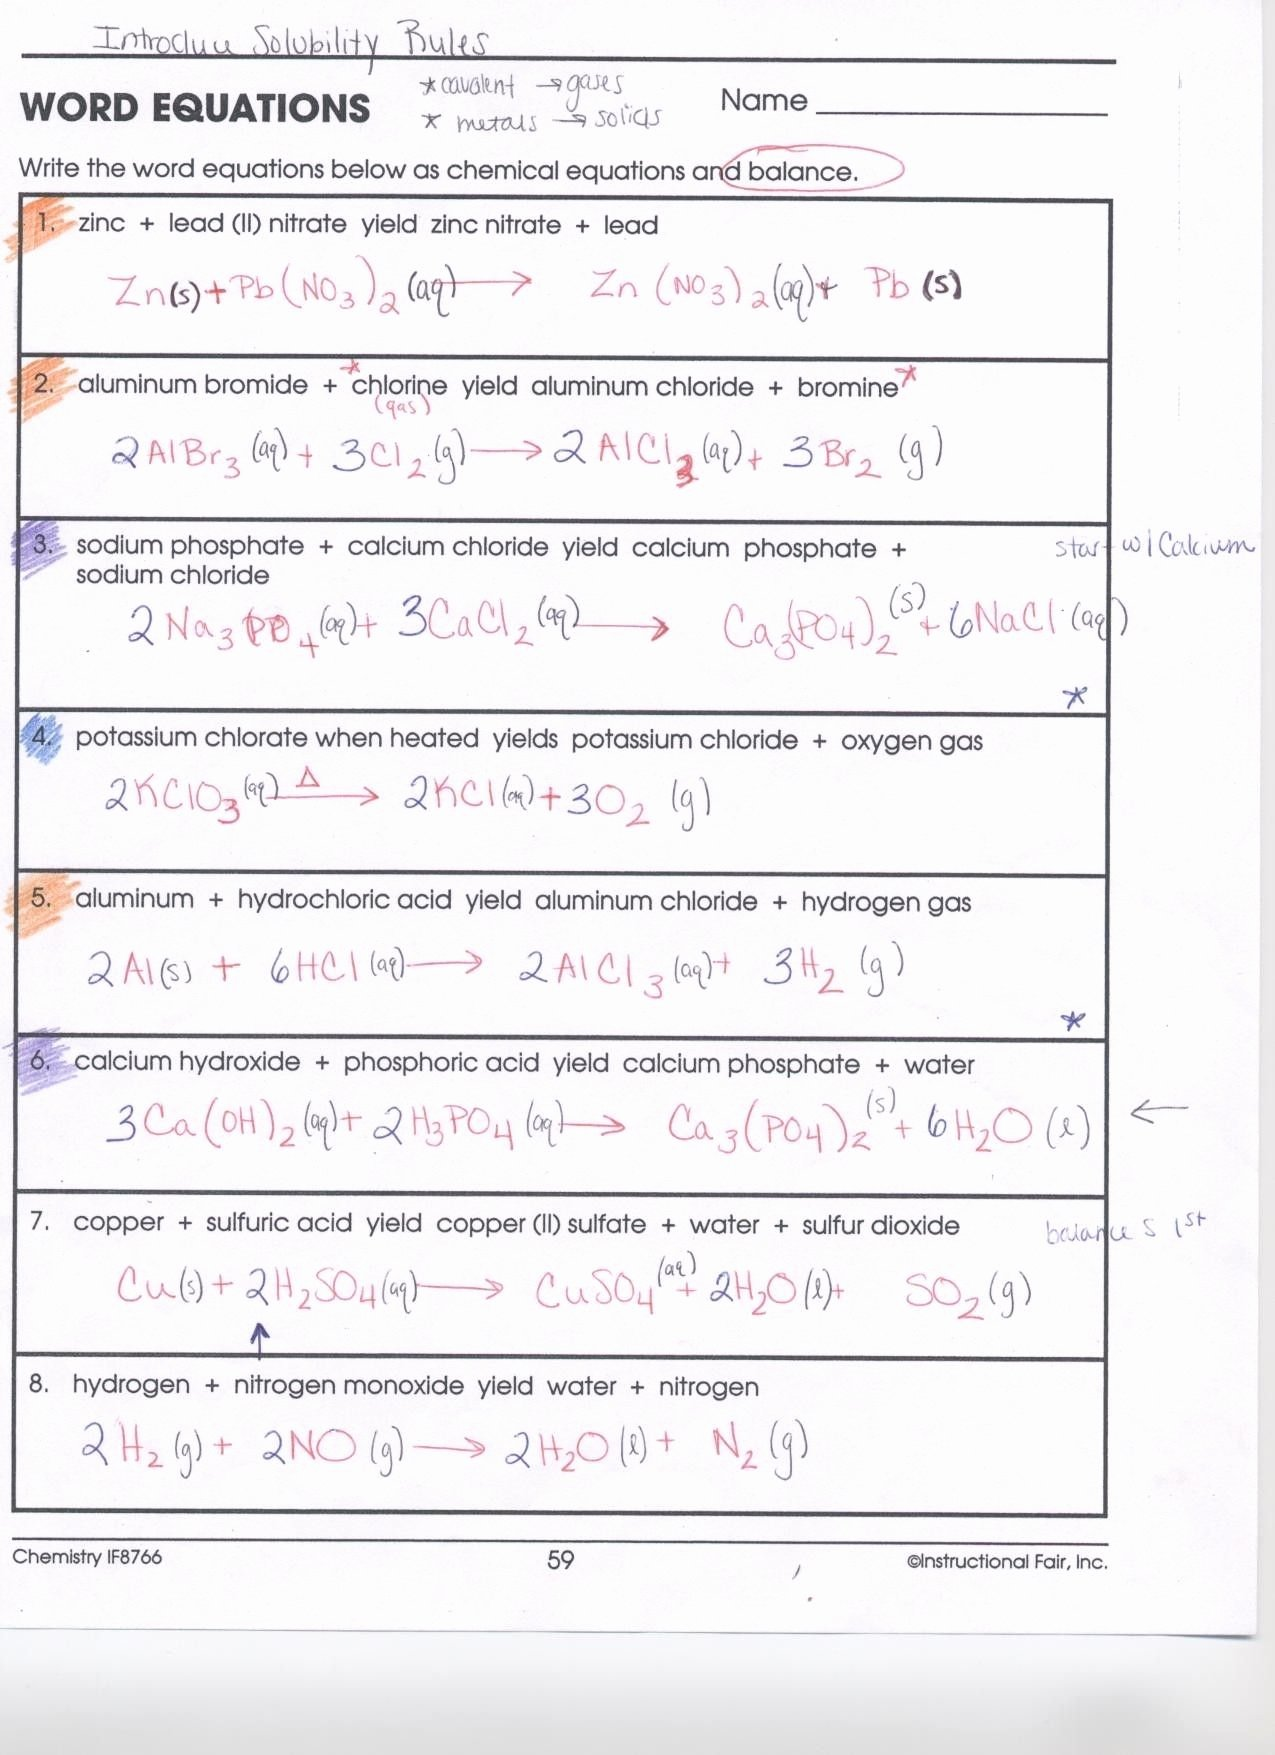 Chemical Reactions Worksheet Answers Lovely Balancing Chemical Equations Worksheet Answer Key